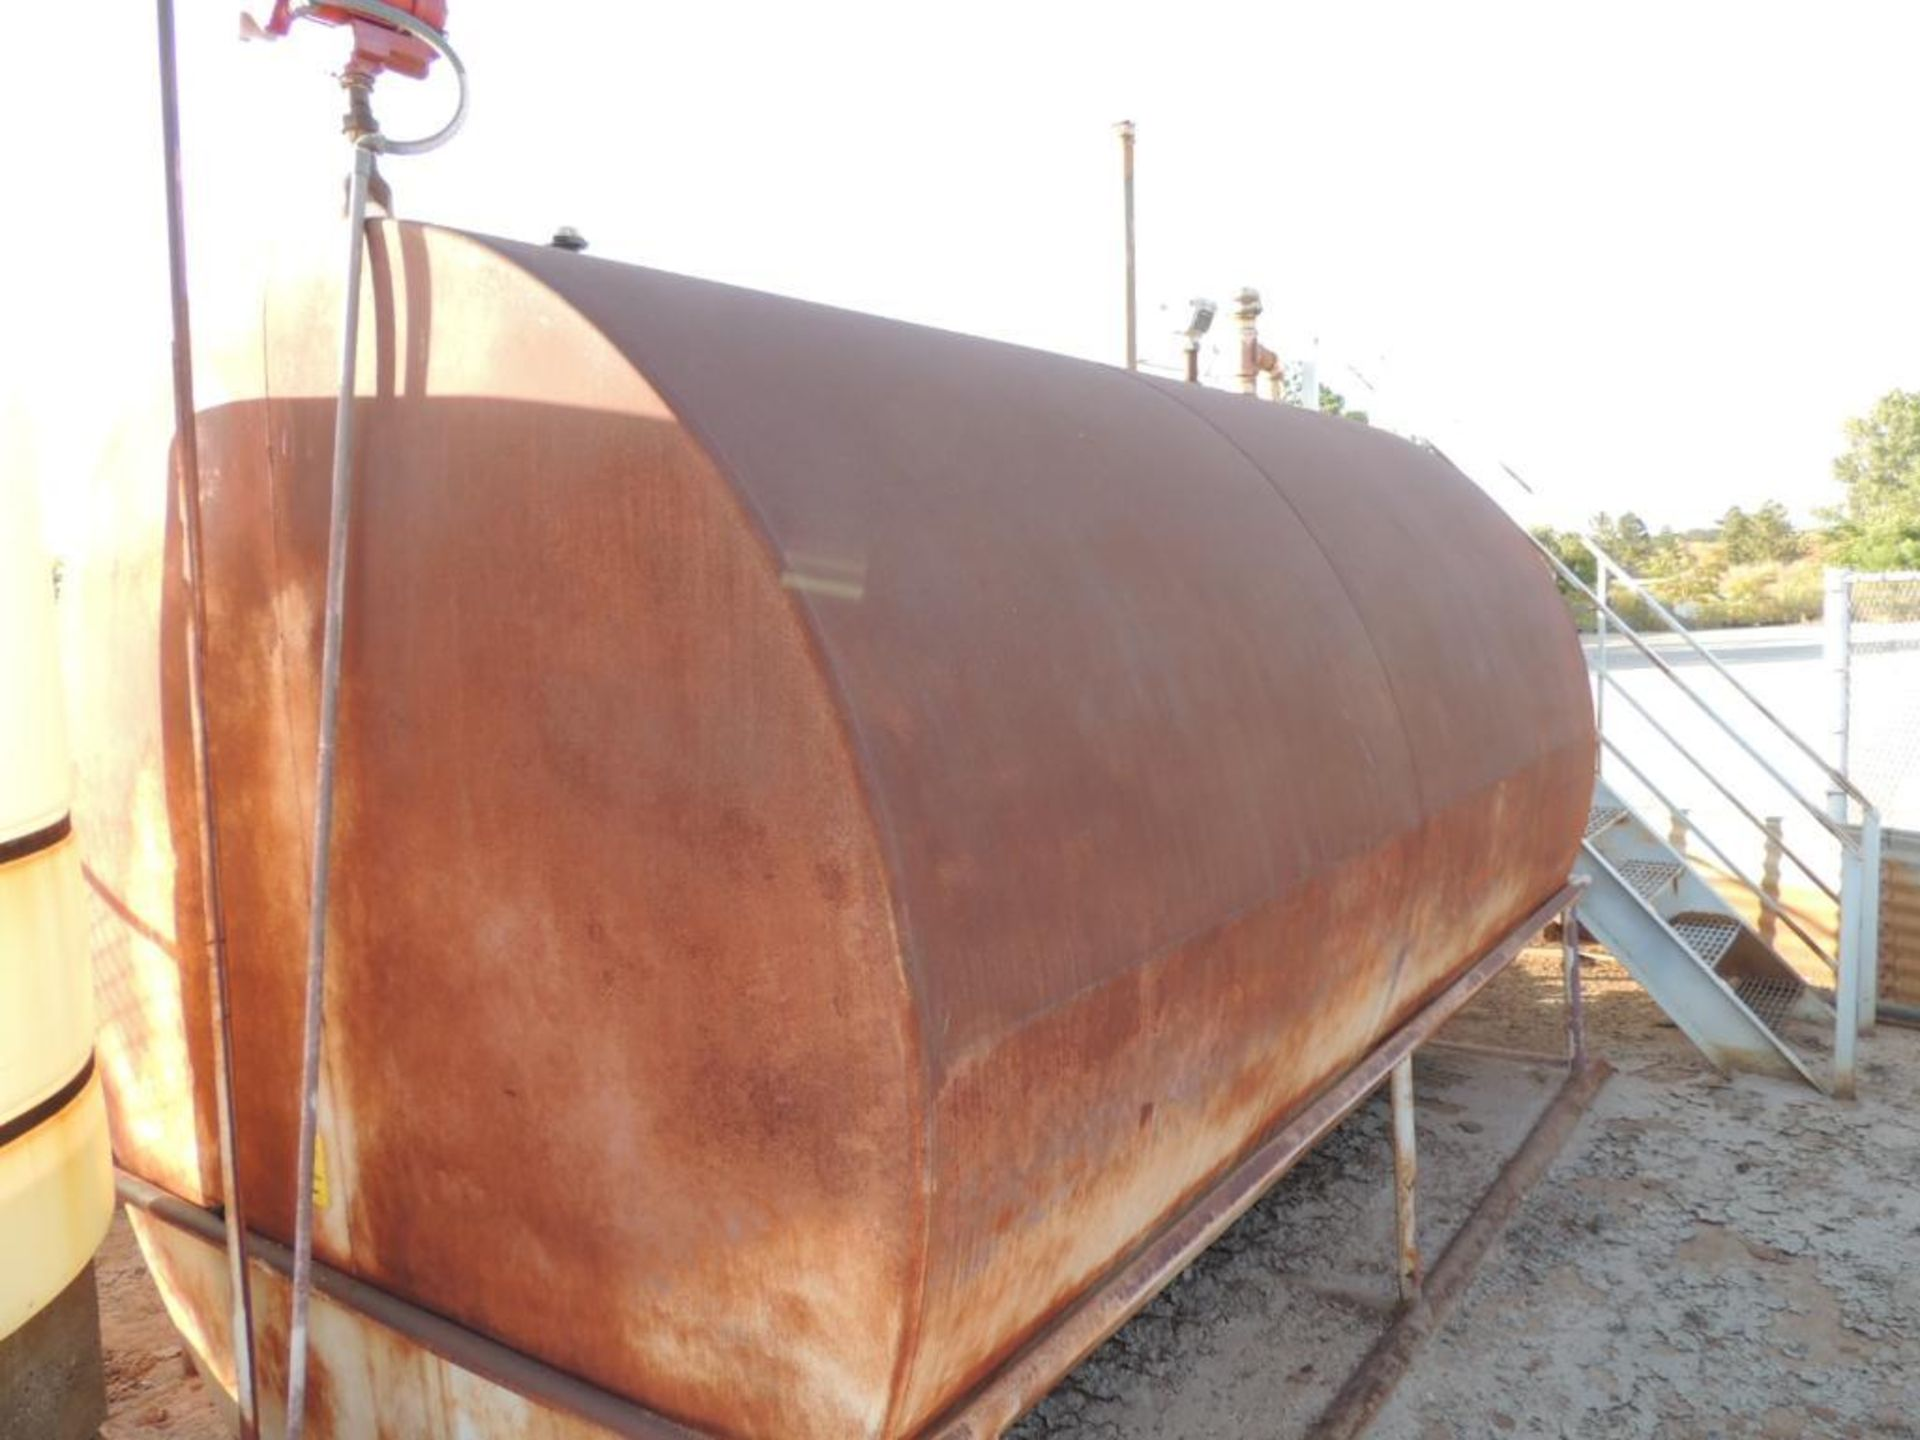 Fuel Island 8200 Gallon Steel Tank, Fuel Master Plus PrOK.ee Management System, Fill-Rite Series 900 - Image 4 of 4